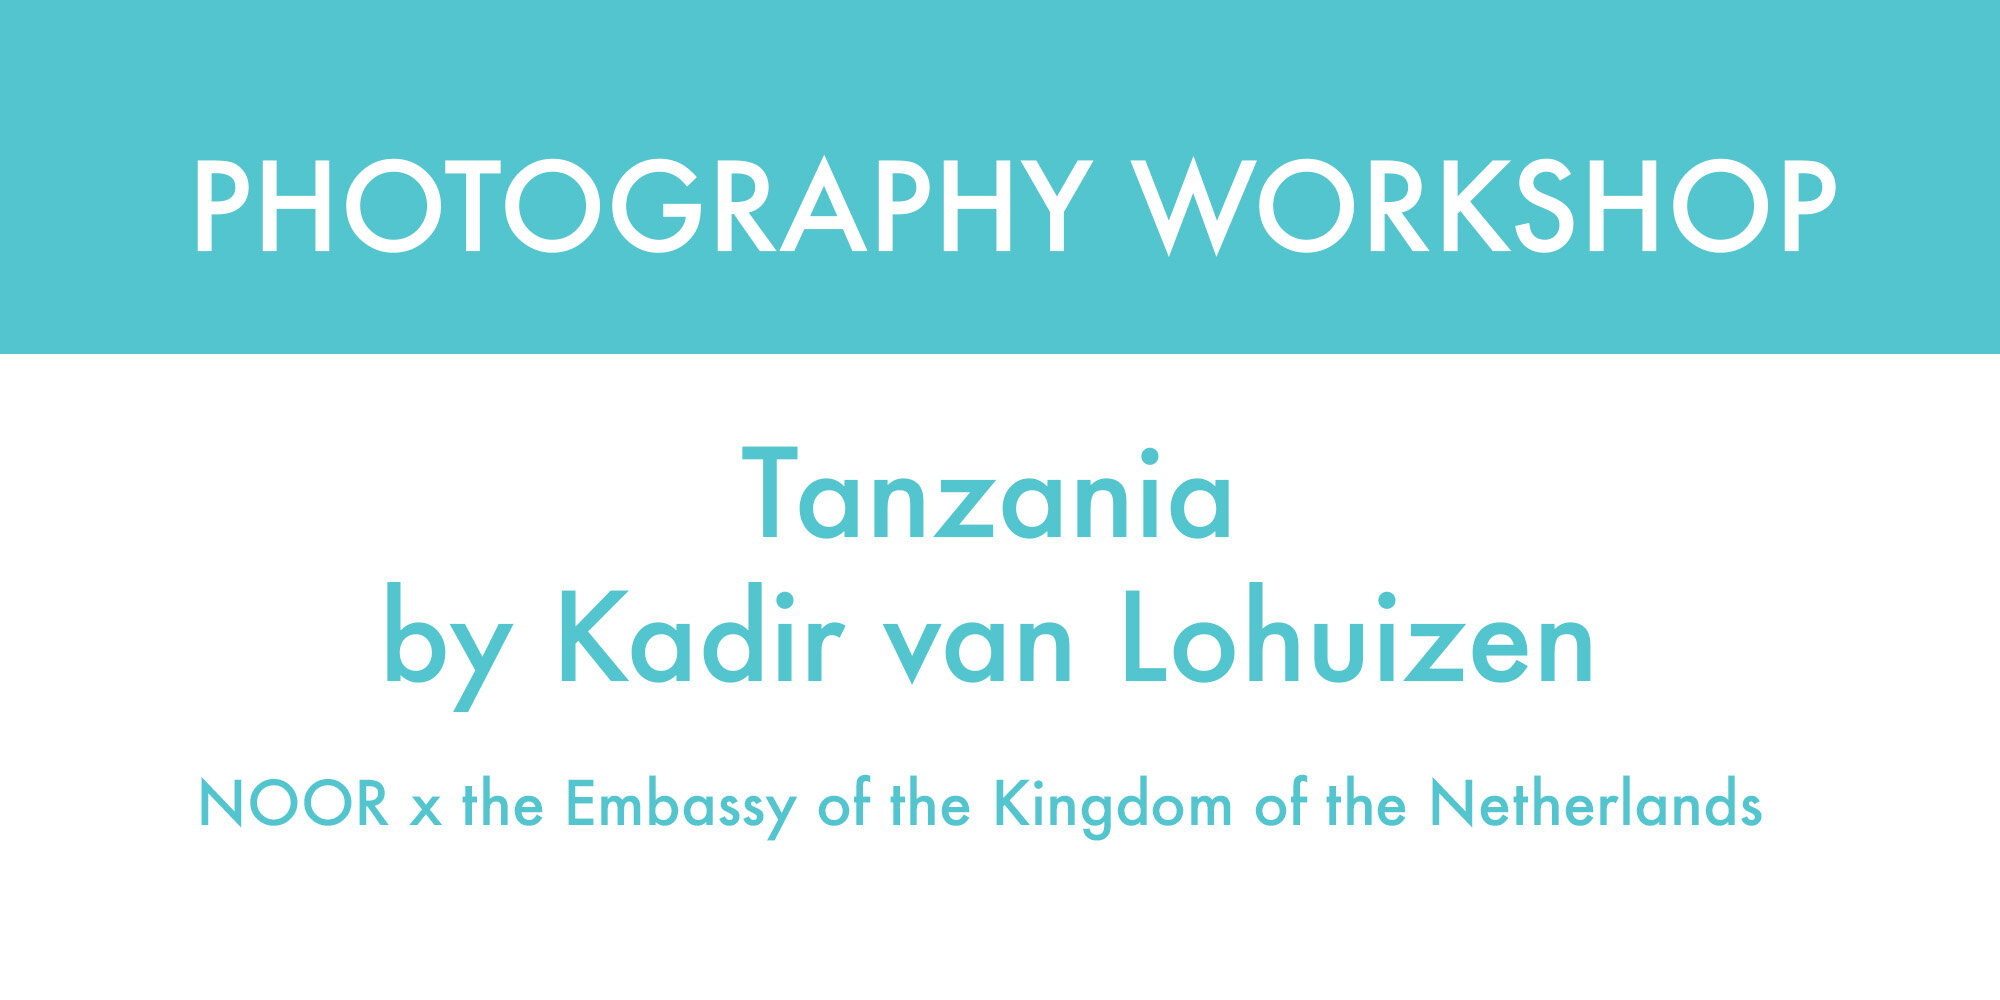 PhotographyWorkshopTanzania.jpg